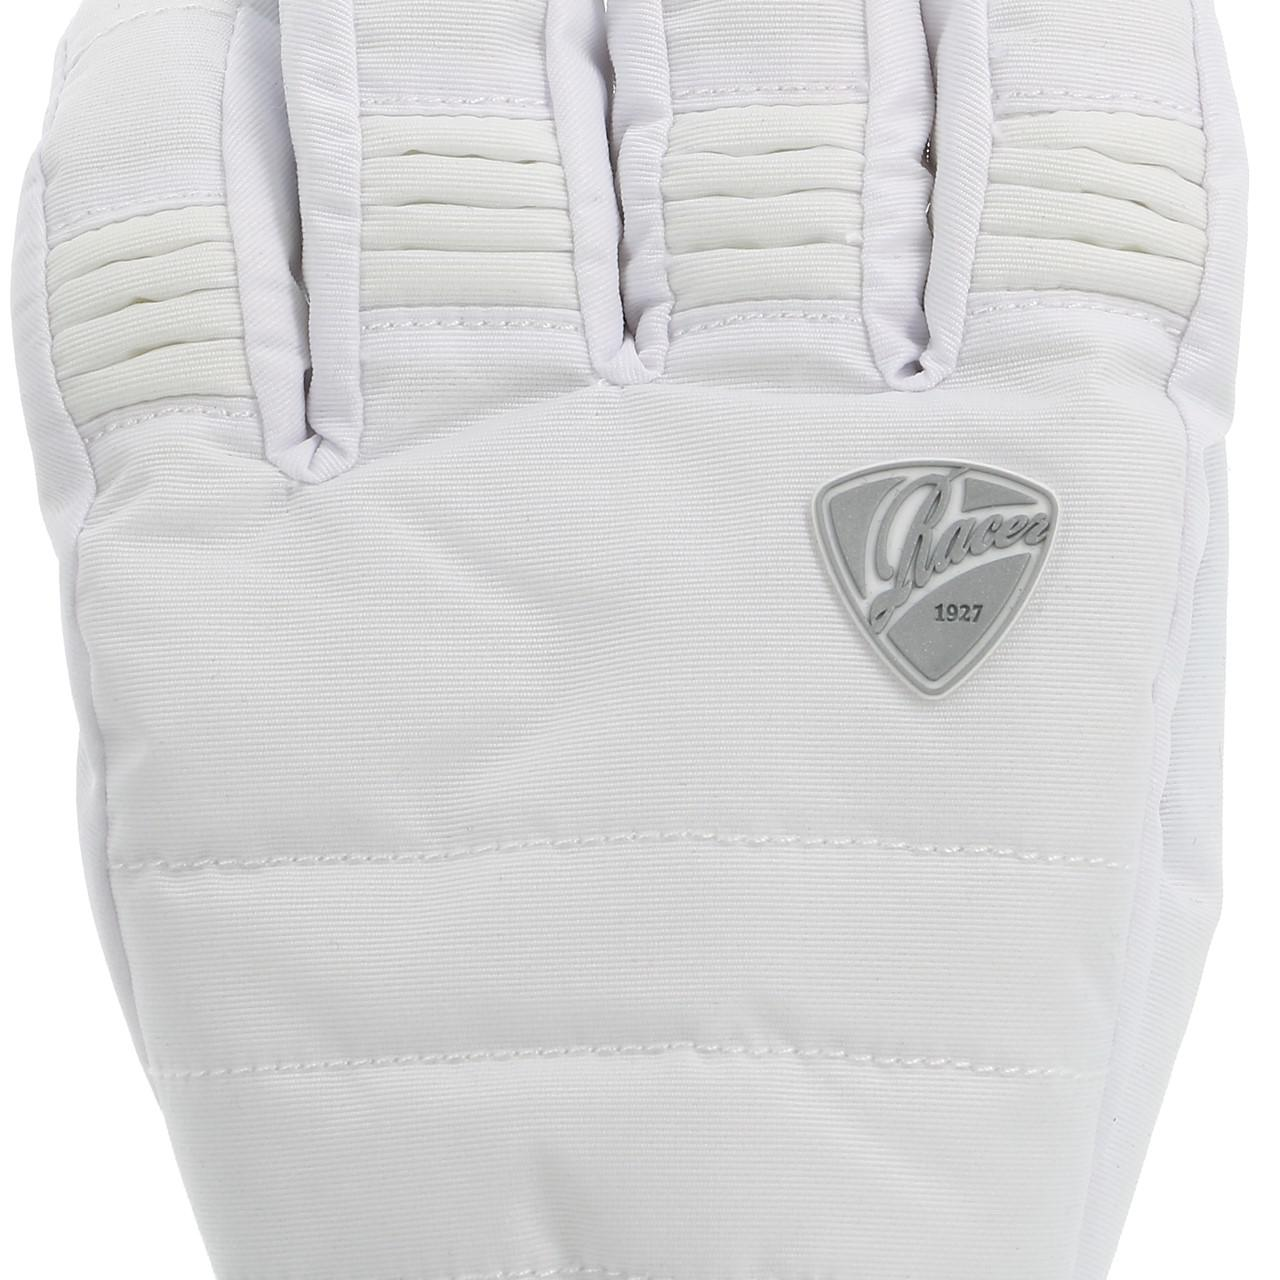 Ski-Gloves-Racer-Aloma-3-White-Gloves-Ski-L-White-15709-New thumbnail 4